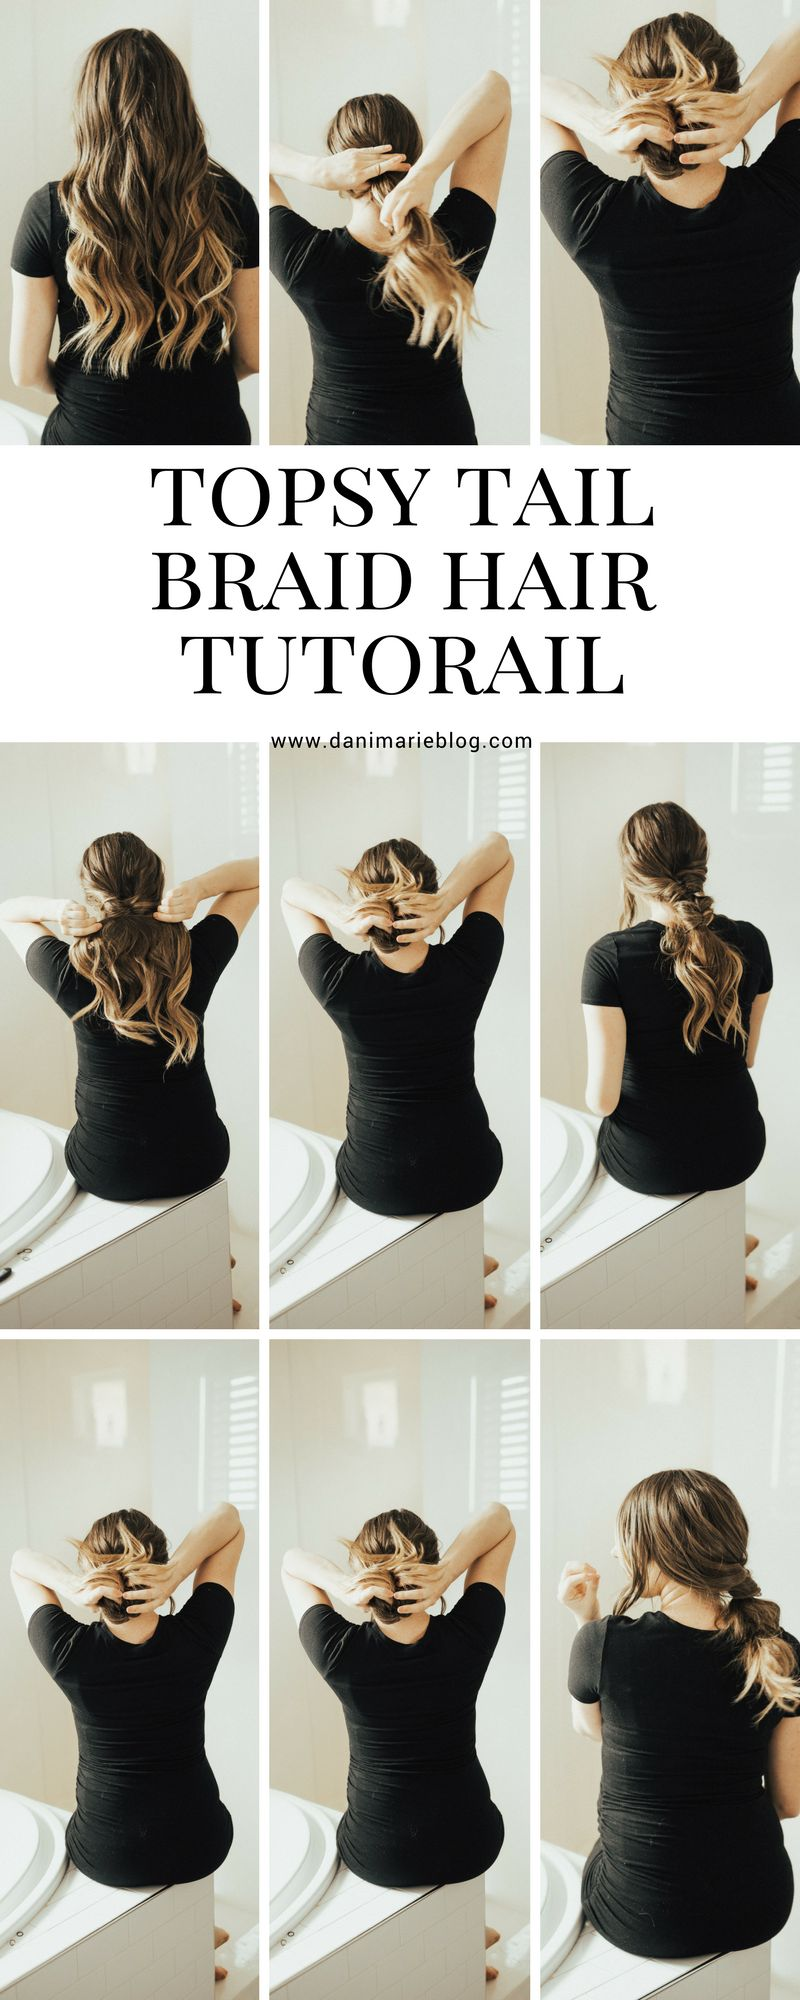 SAVE this right now! Utah Style Blogger Dani Marie is sharing her top simple braid ideas for long hair. #topsytail #hairstyle #hairtutorial #easyhairstyle #updohairstyle #danimarie